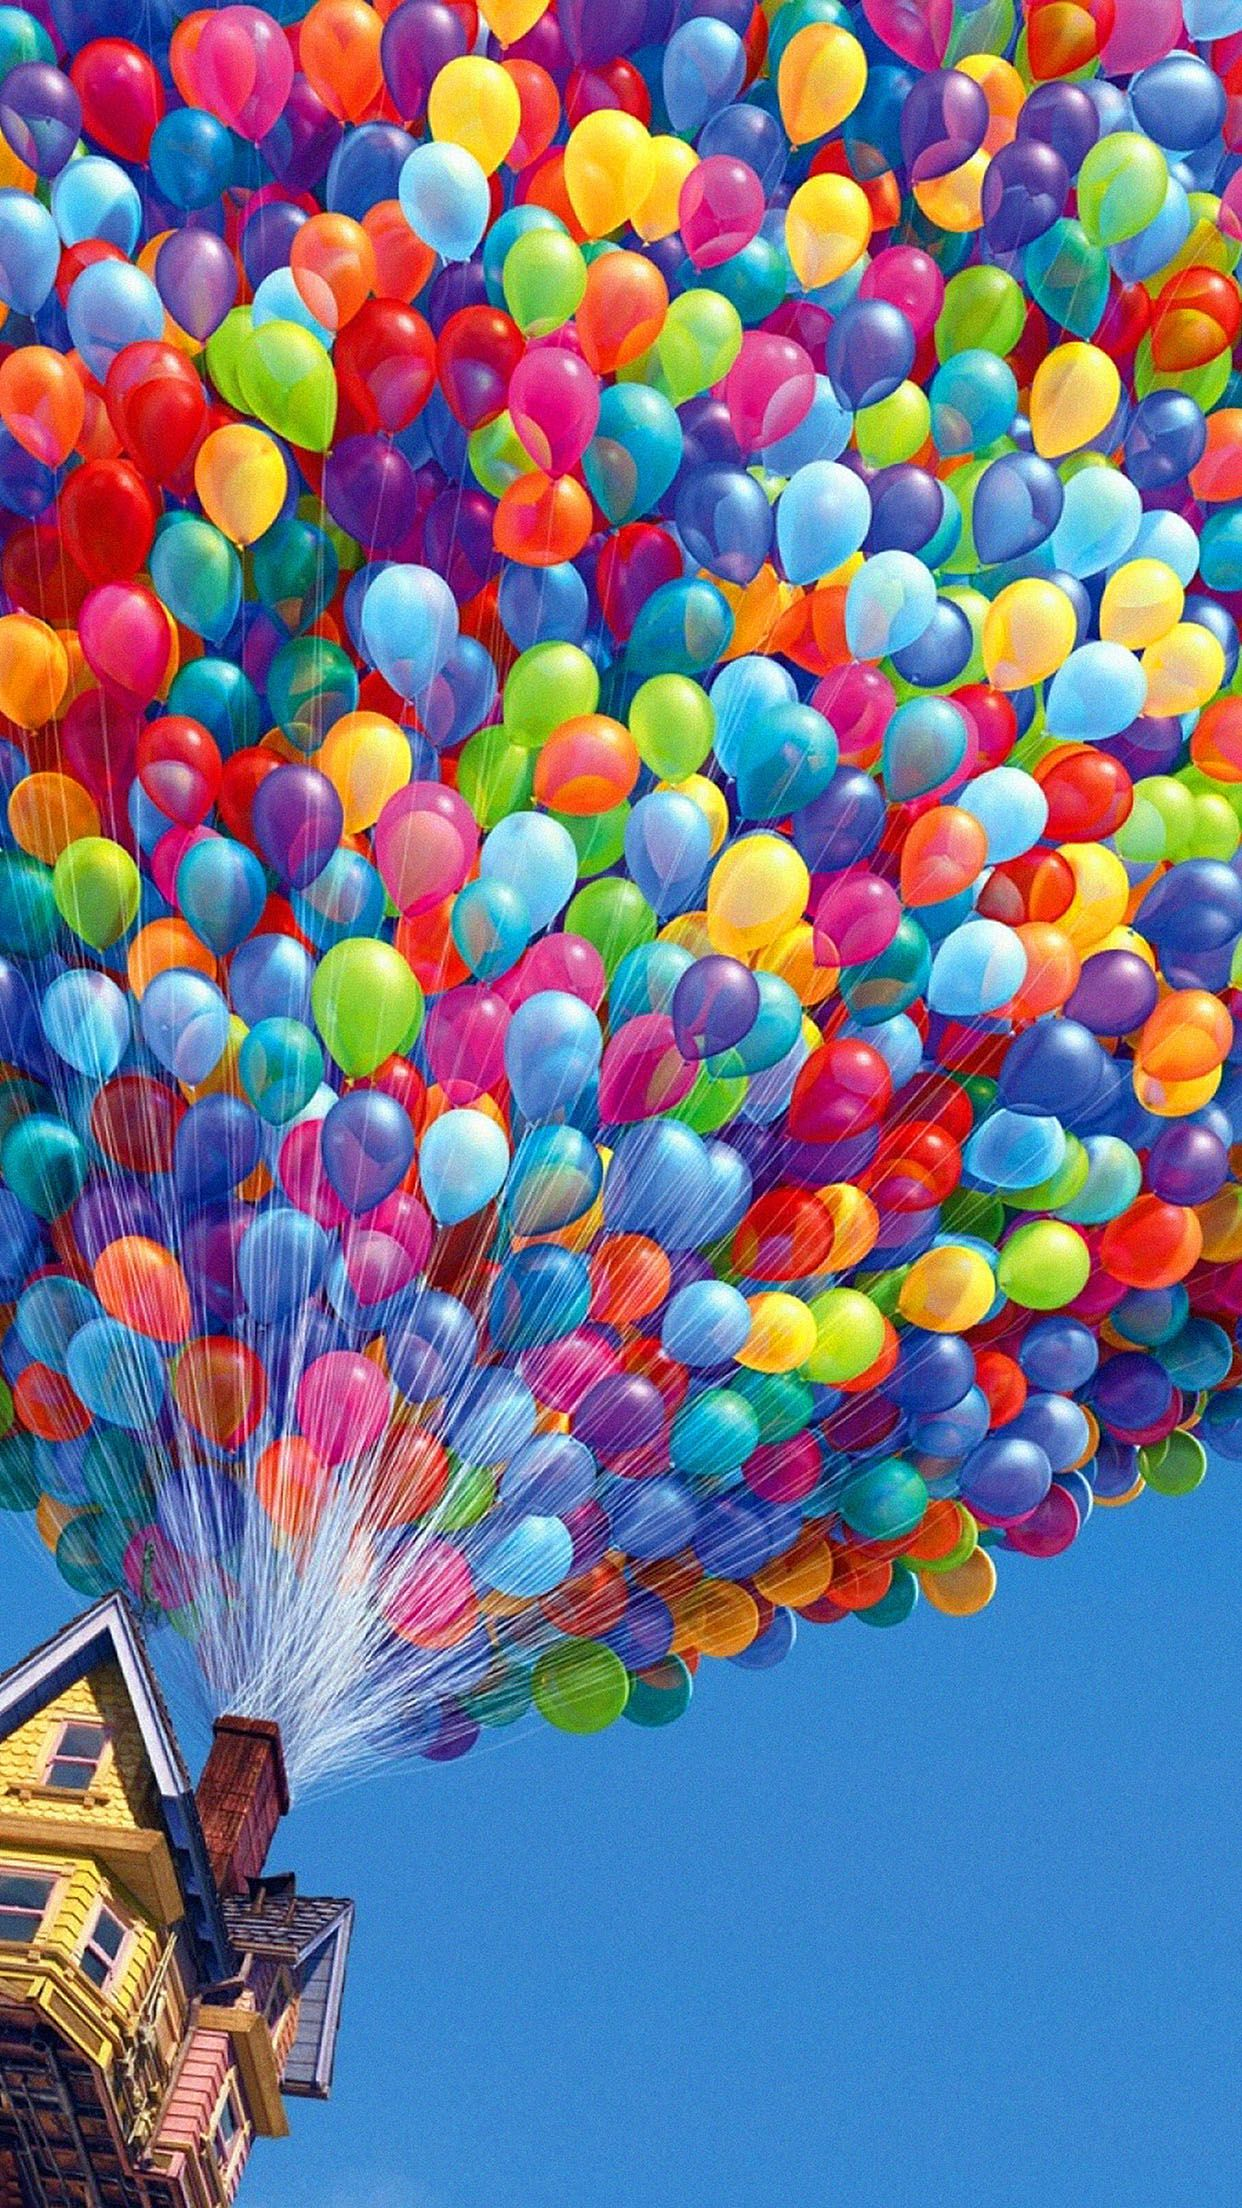 colorful balloons house up movie android wallpaper art pinterest